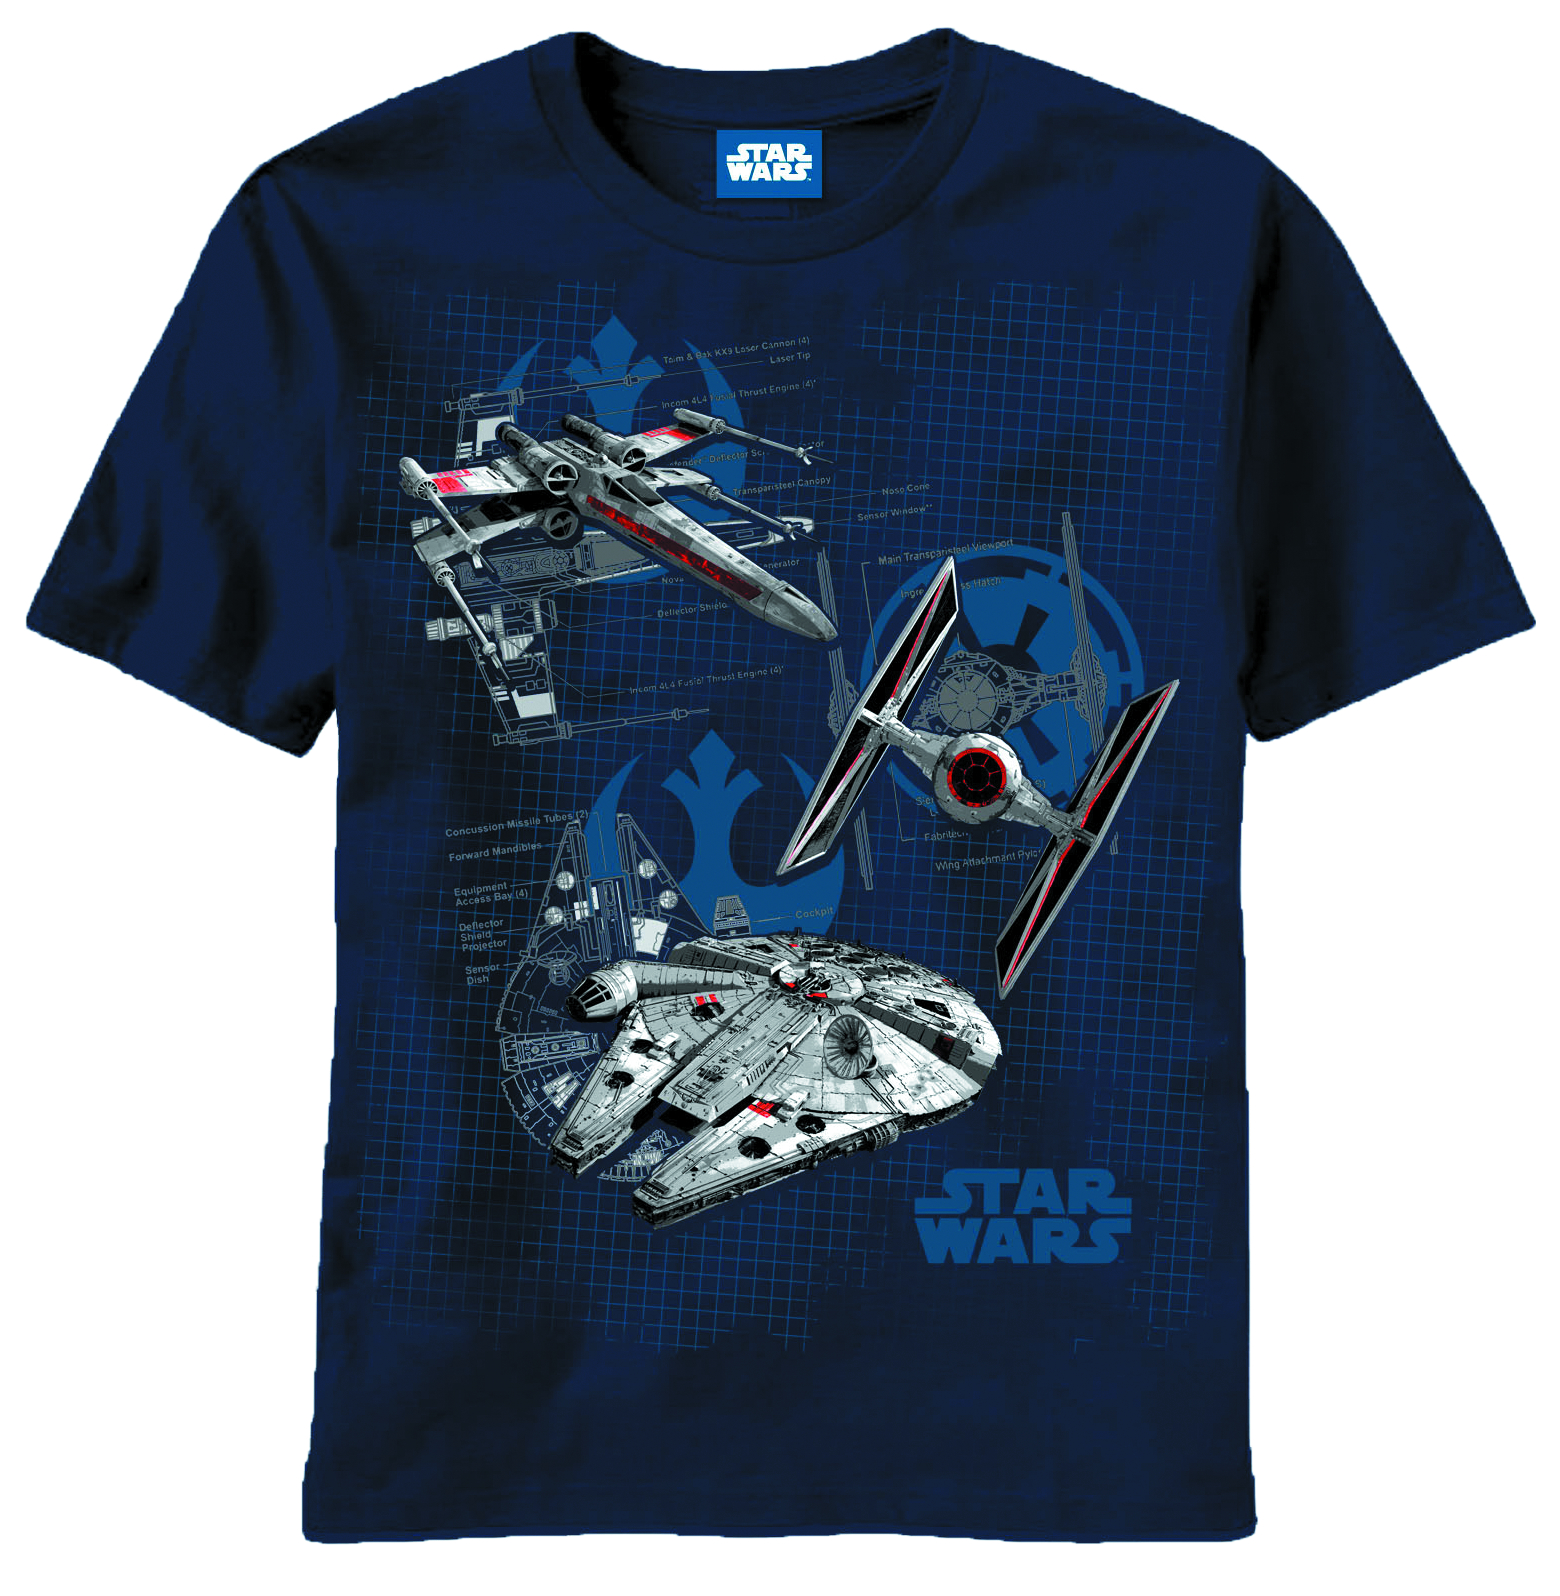 STAR WARS SHIPS DIAGRAMS NAVY T/S LG